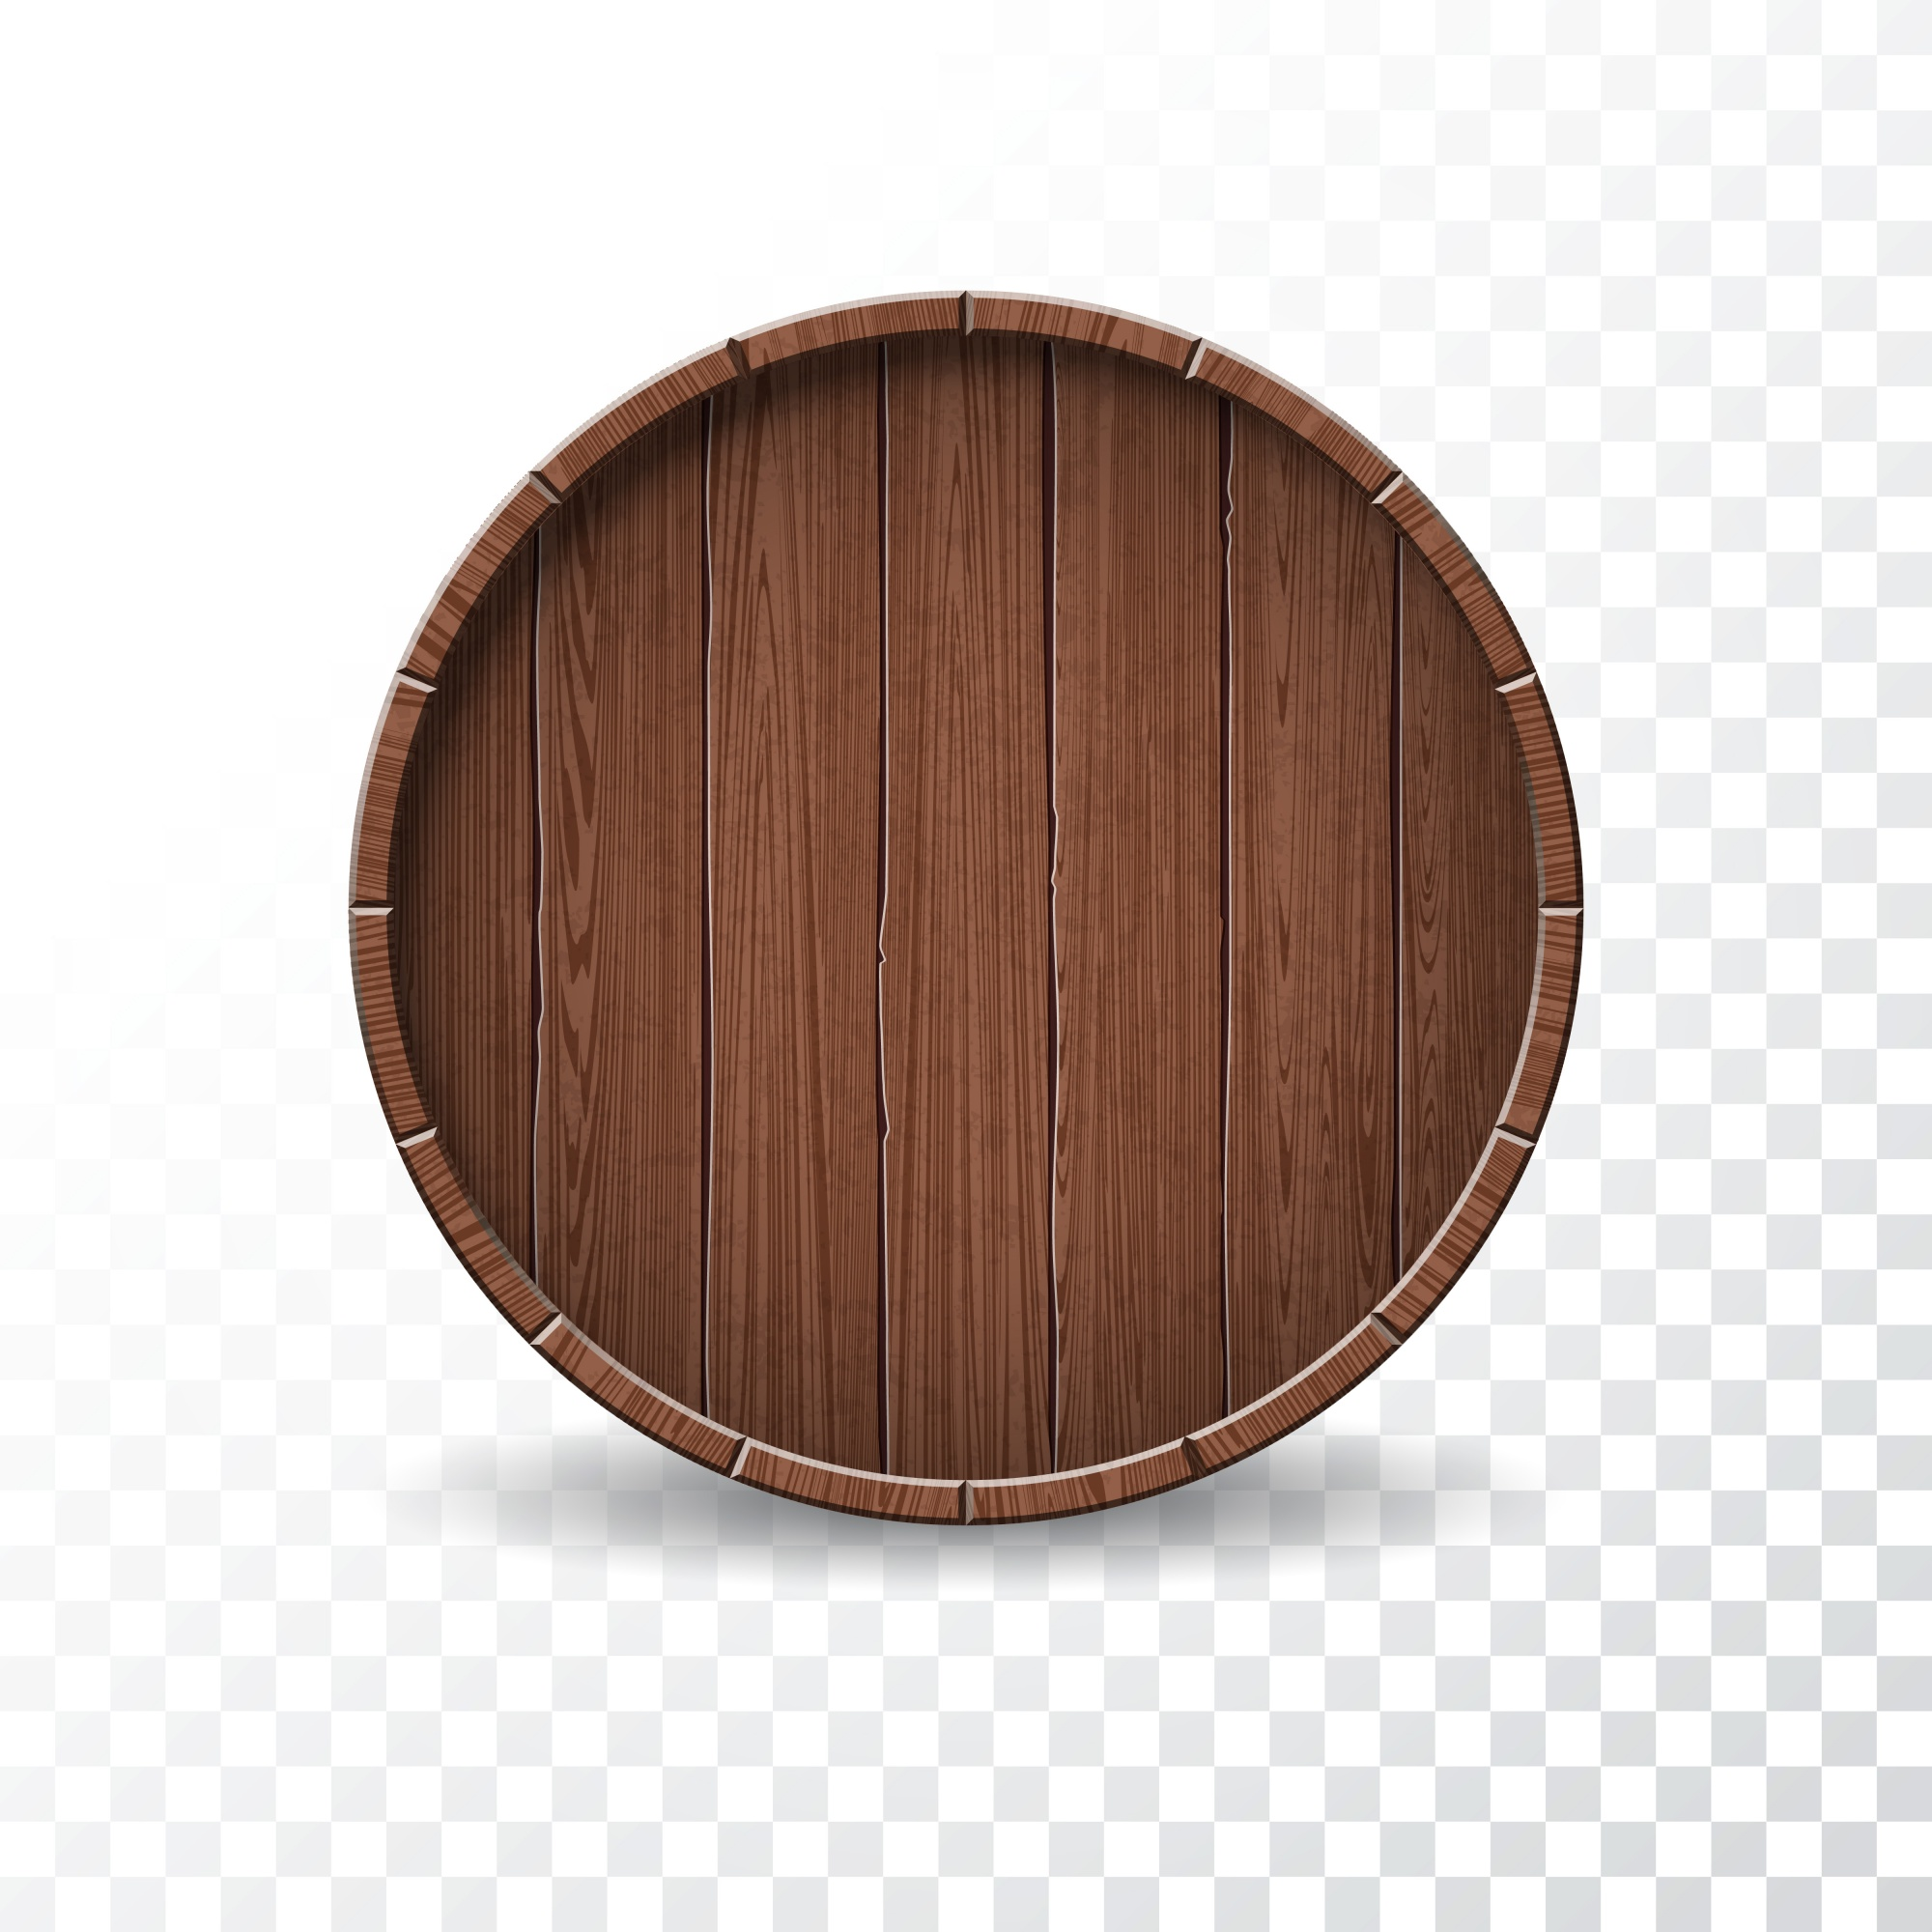 Vector illustration with isolated Wood Barrel on transparent background.